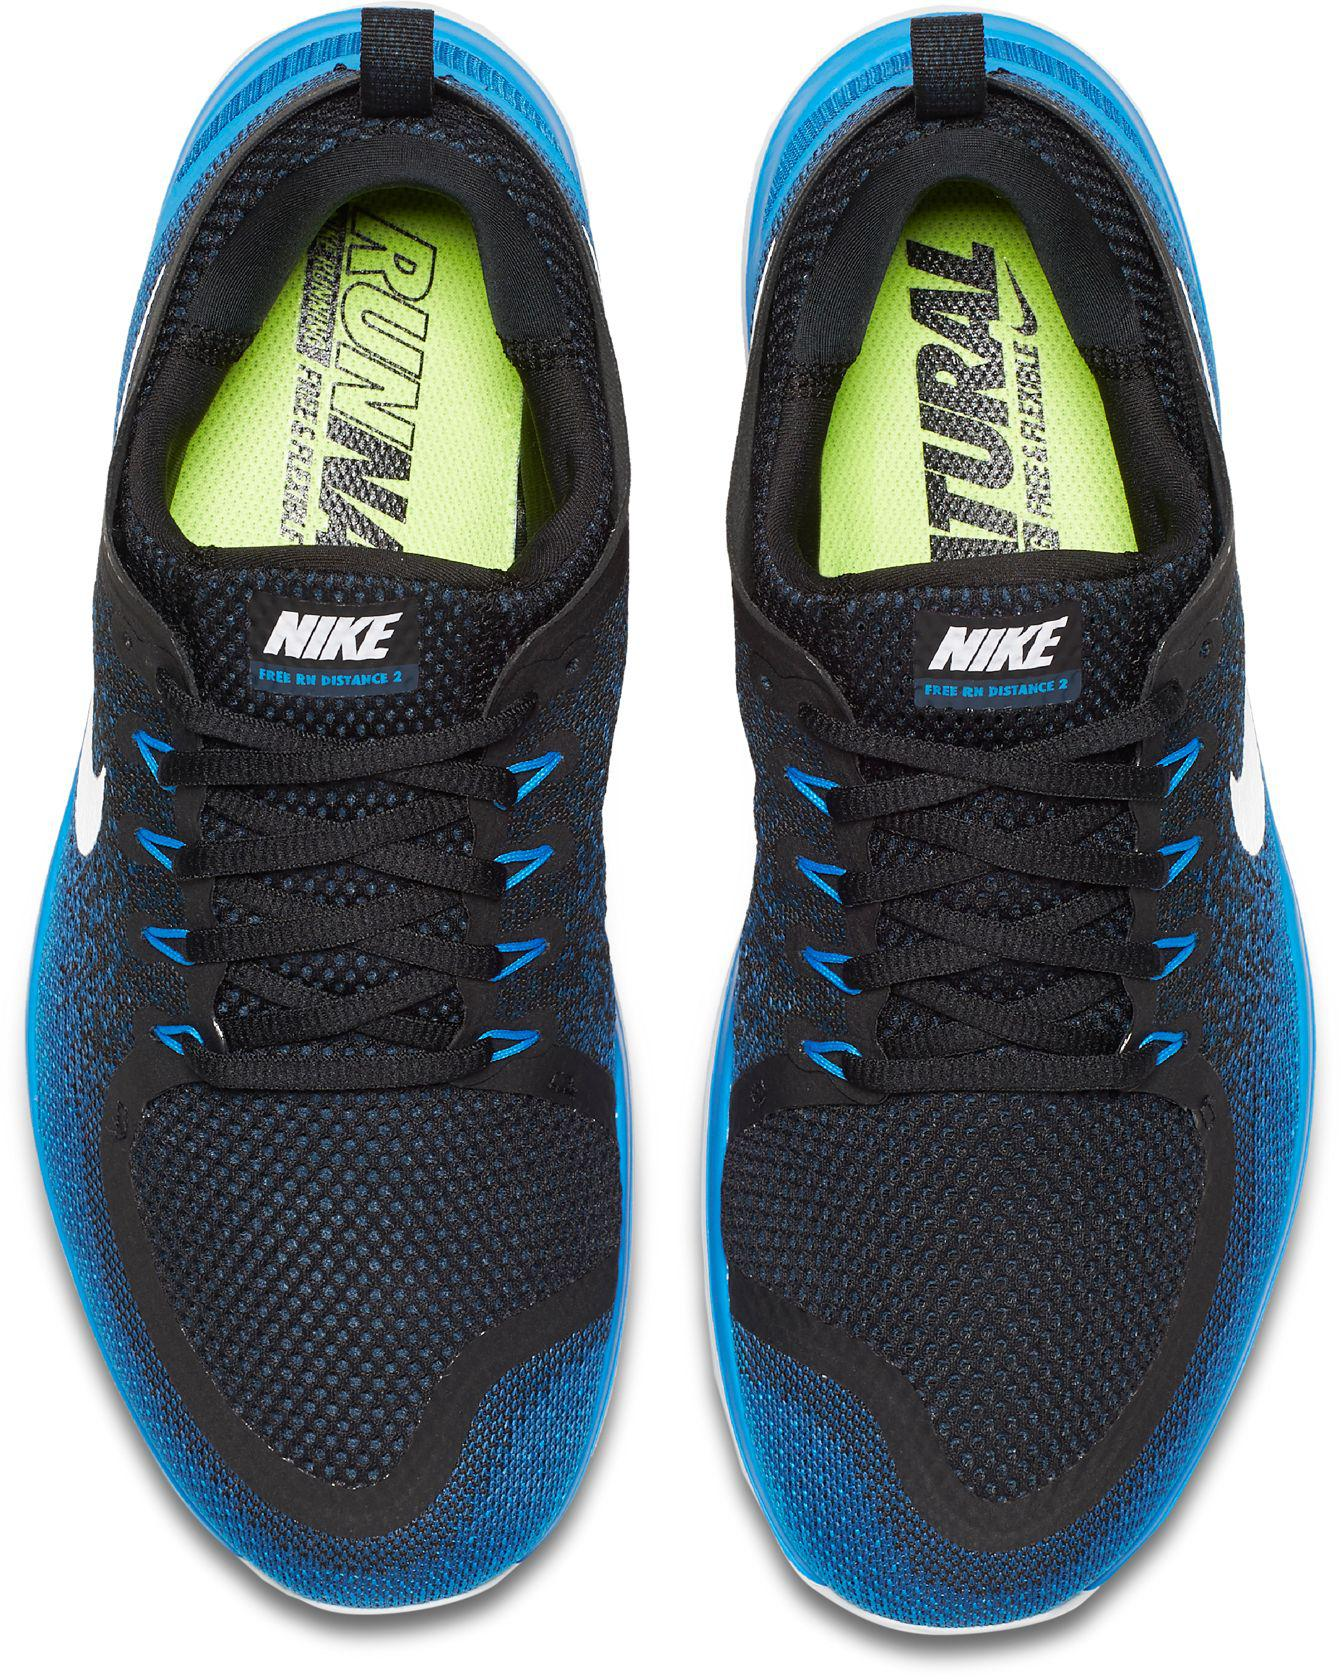 247c757ac1158 Lyst - Nike Free Rn Distance 2 Running Shoes in Blue for Men